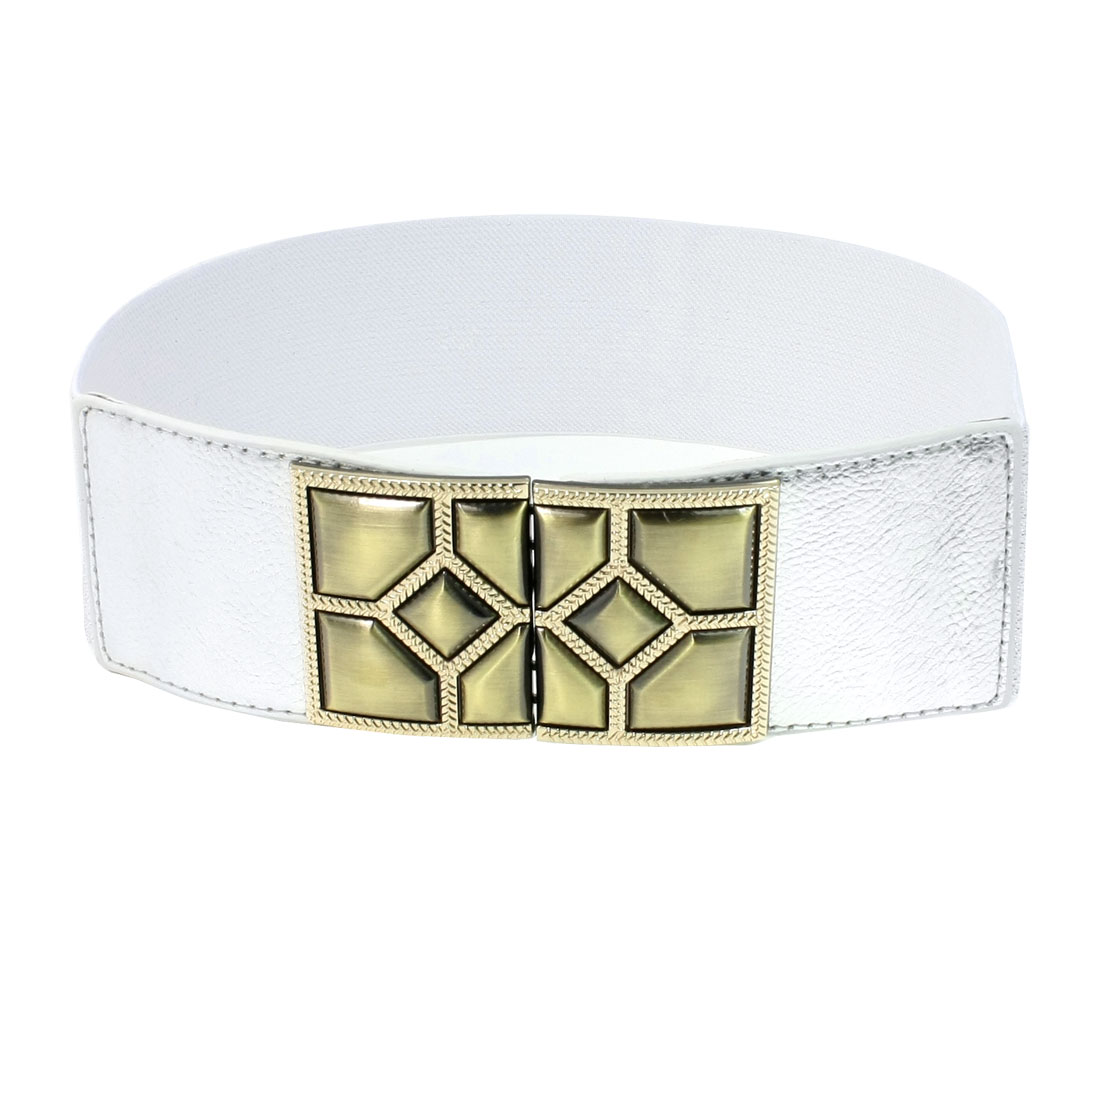 Faceted Interlocking Buckle 6cm Wide Elastic Cinch Belt Silver Tone for Lady